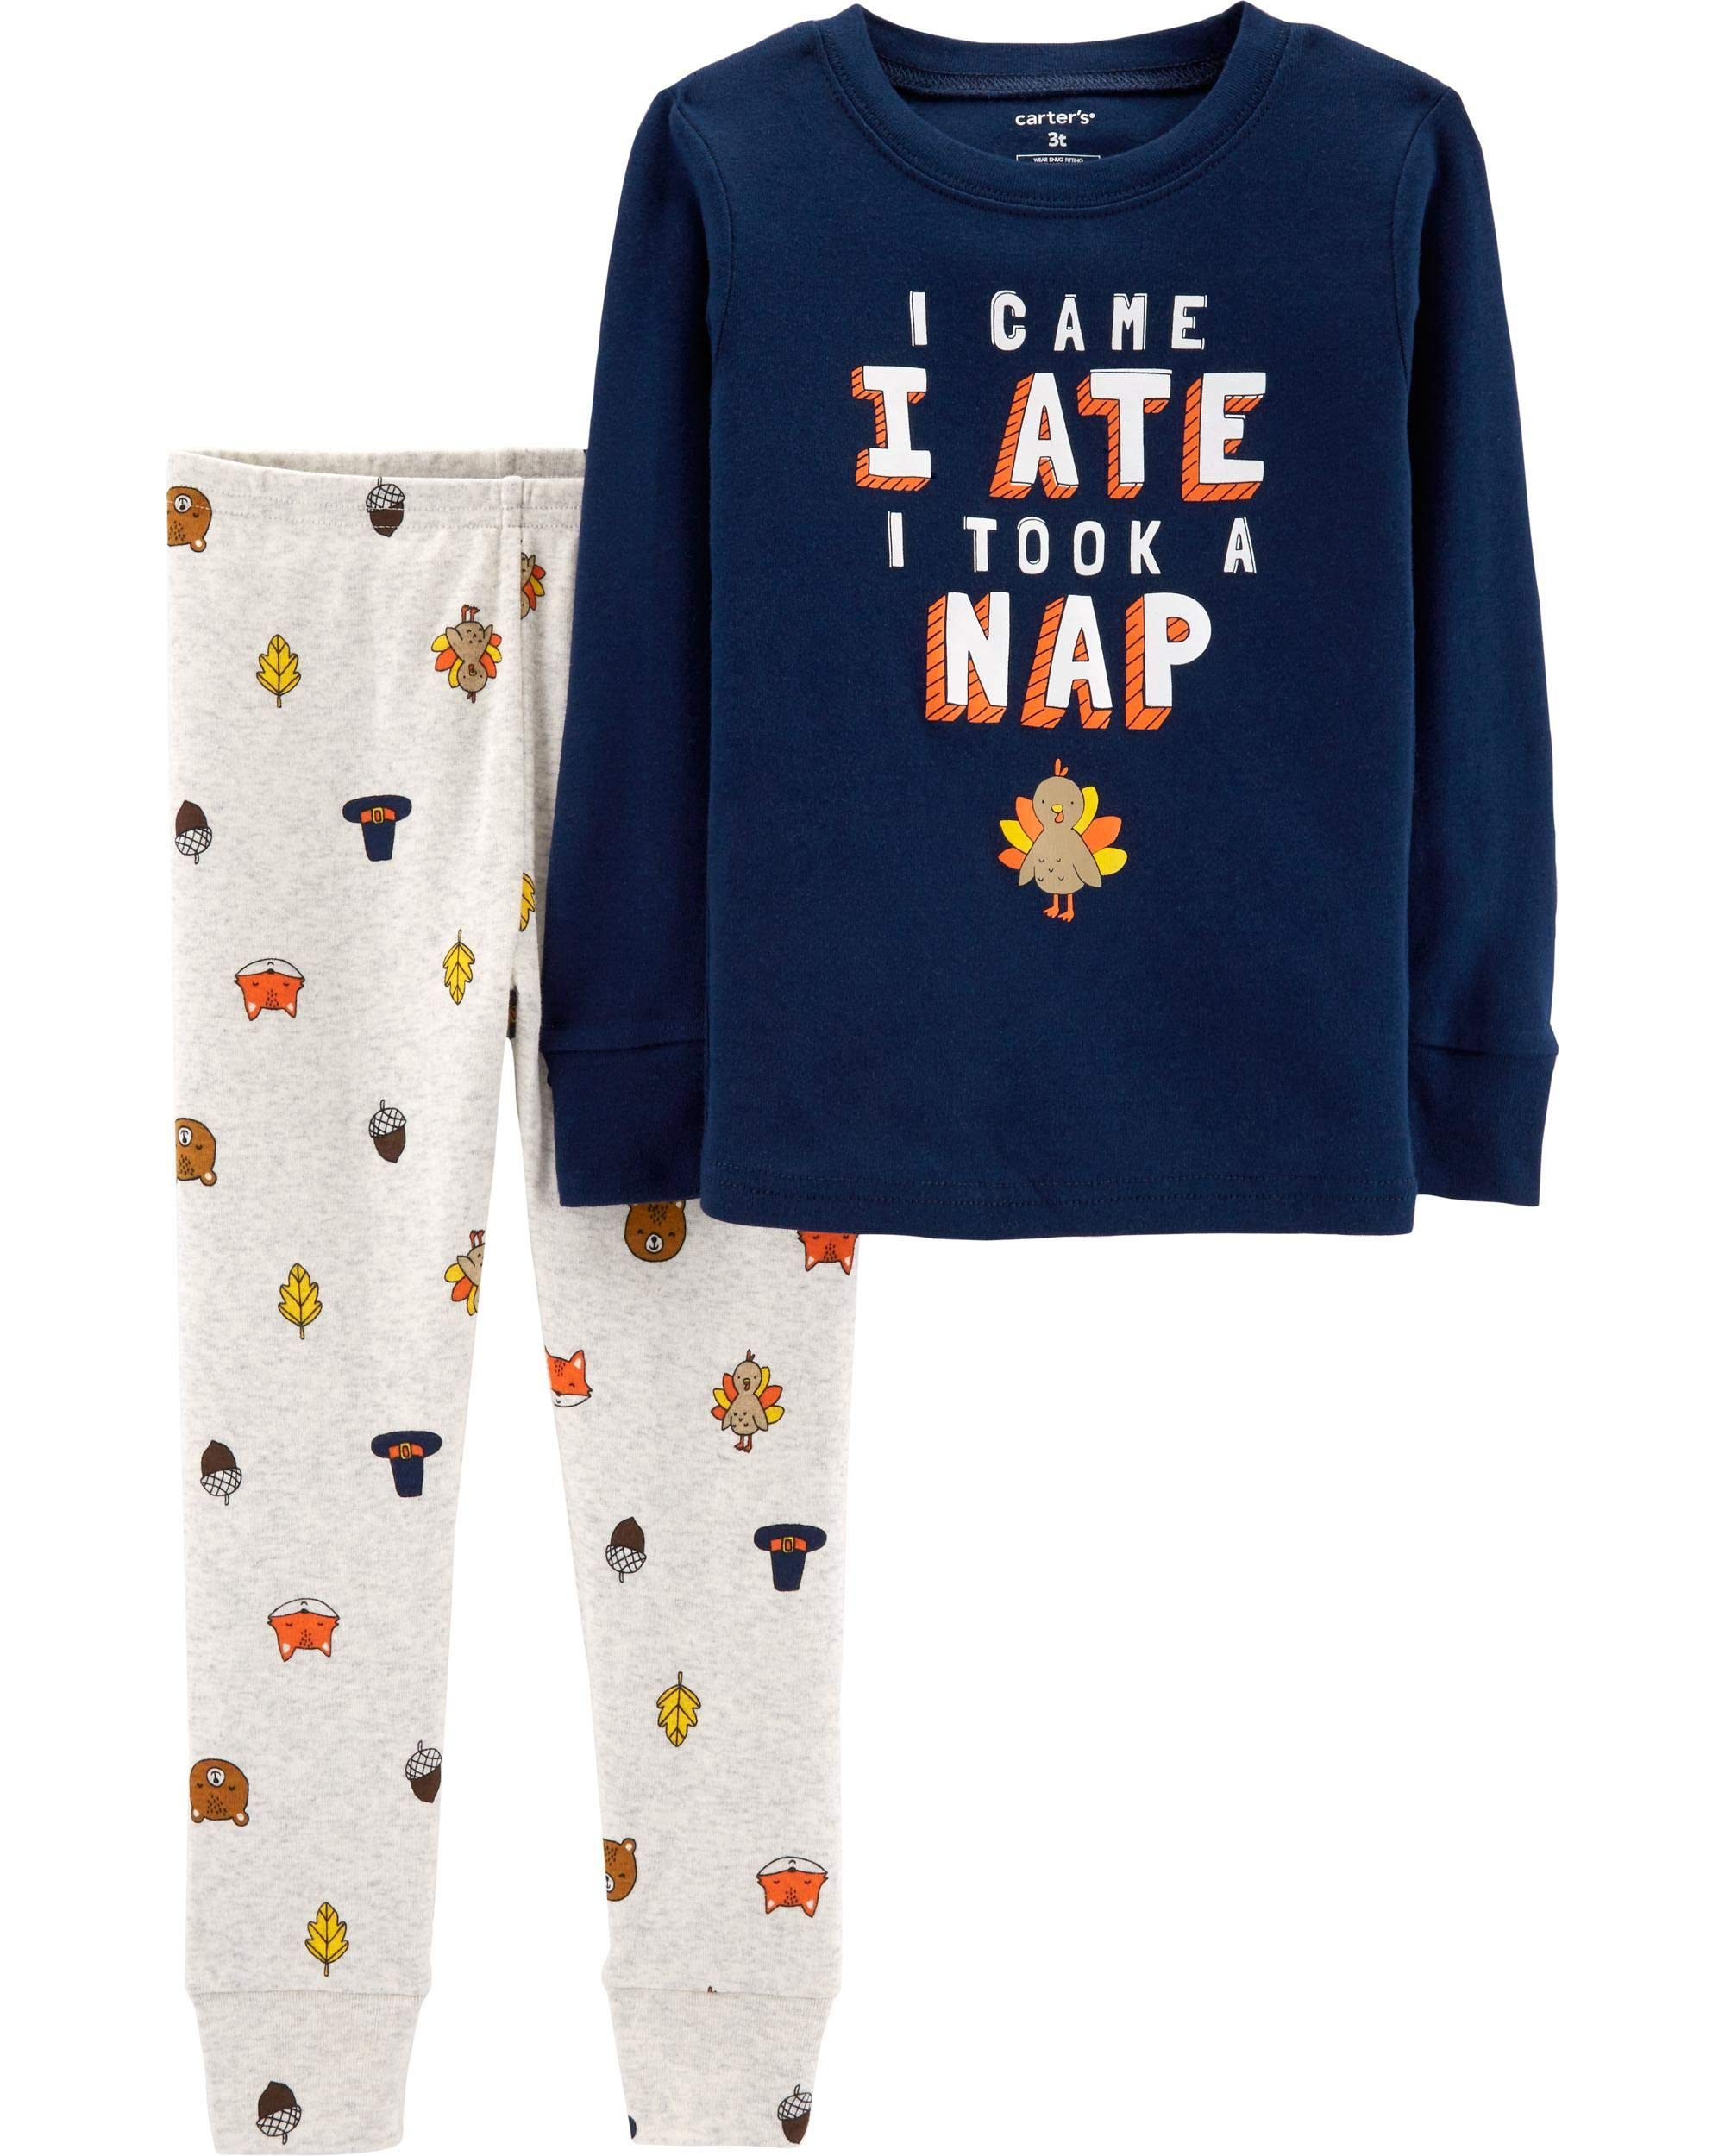 Carter's 2-Piece Snug Fit Cotton Thanksgiving PJs